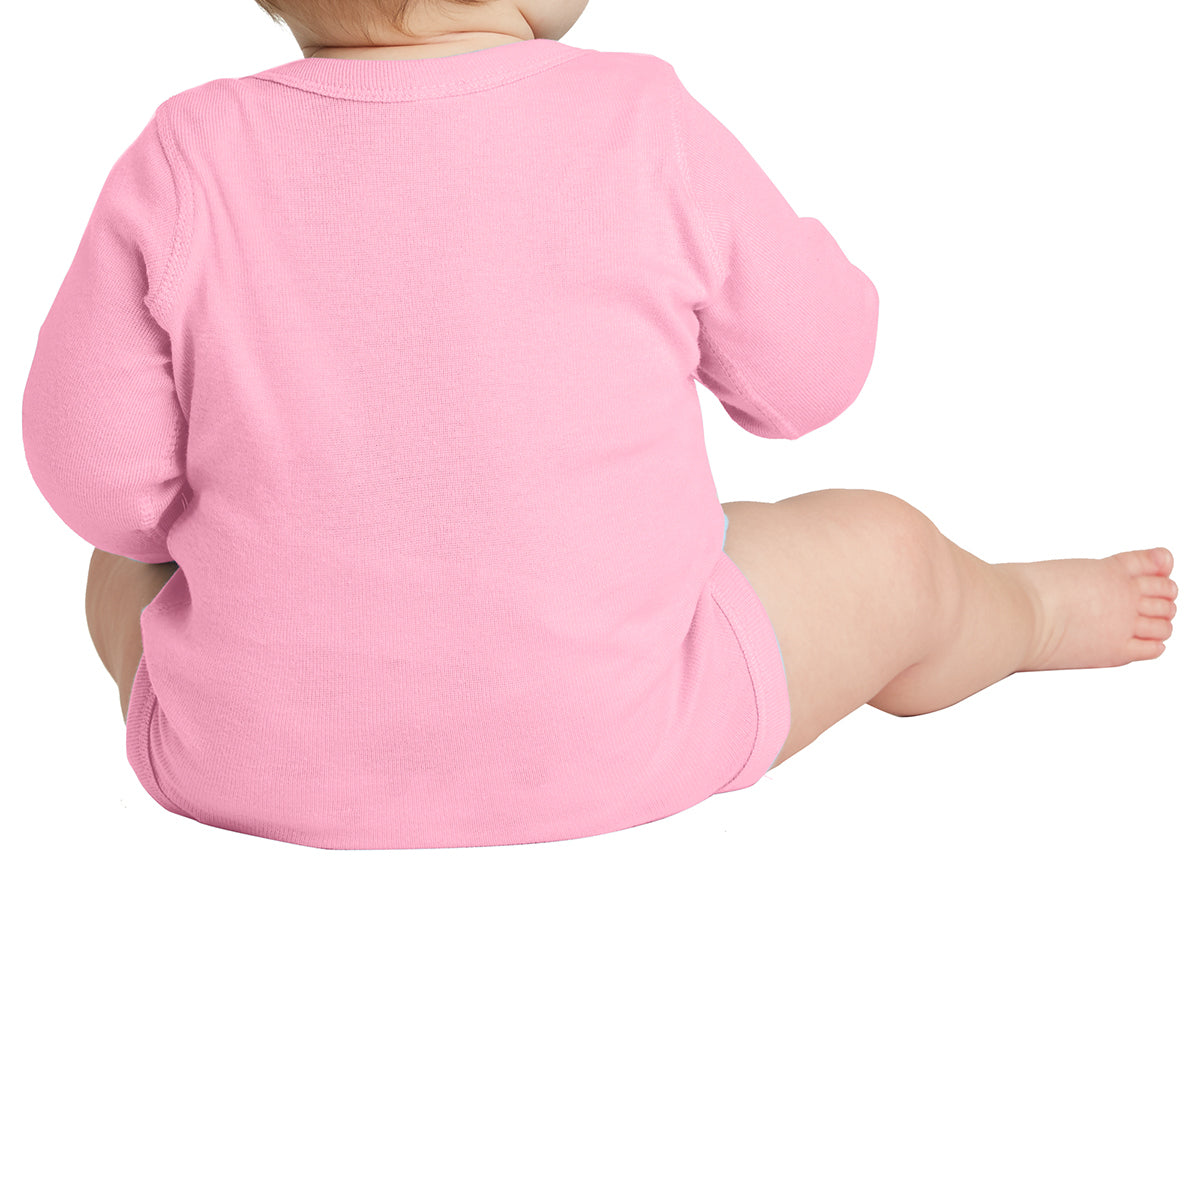 Infant Long Sleeve Baby Rib Bodysuit - Pink